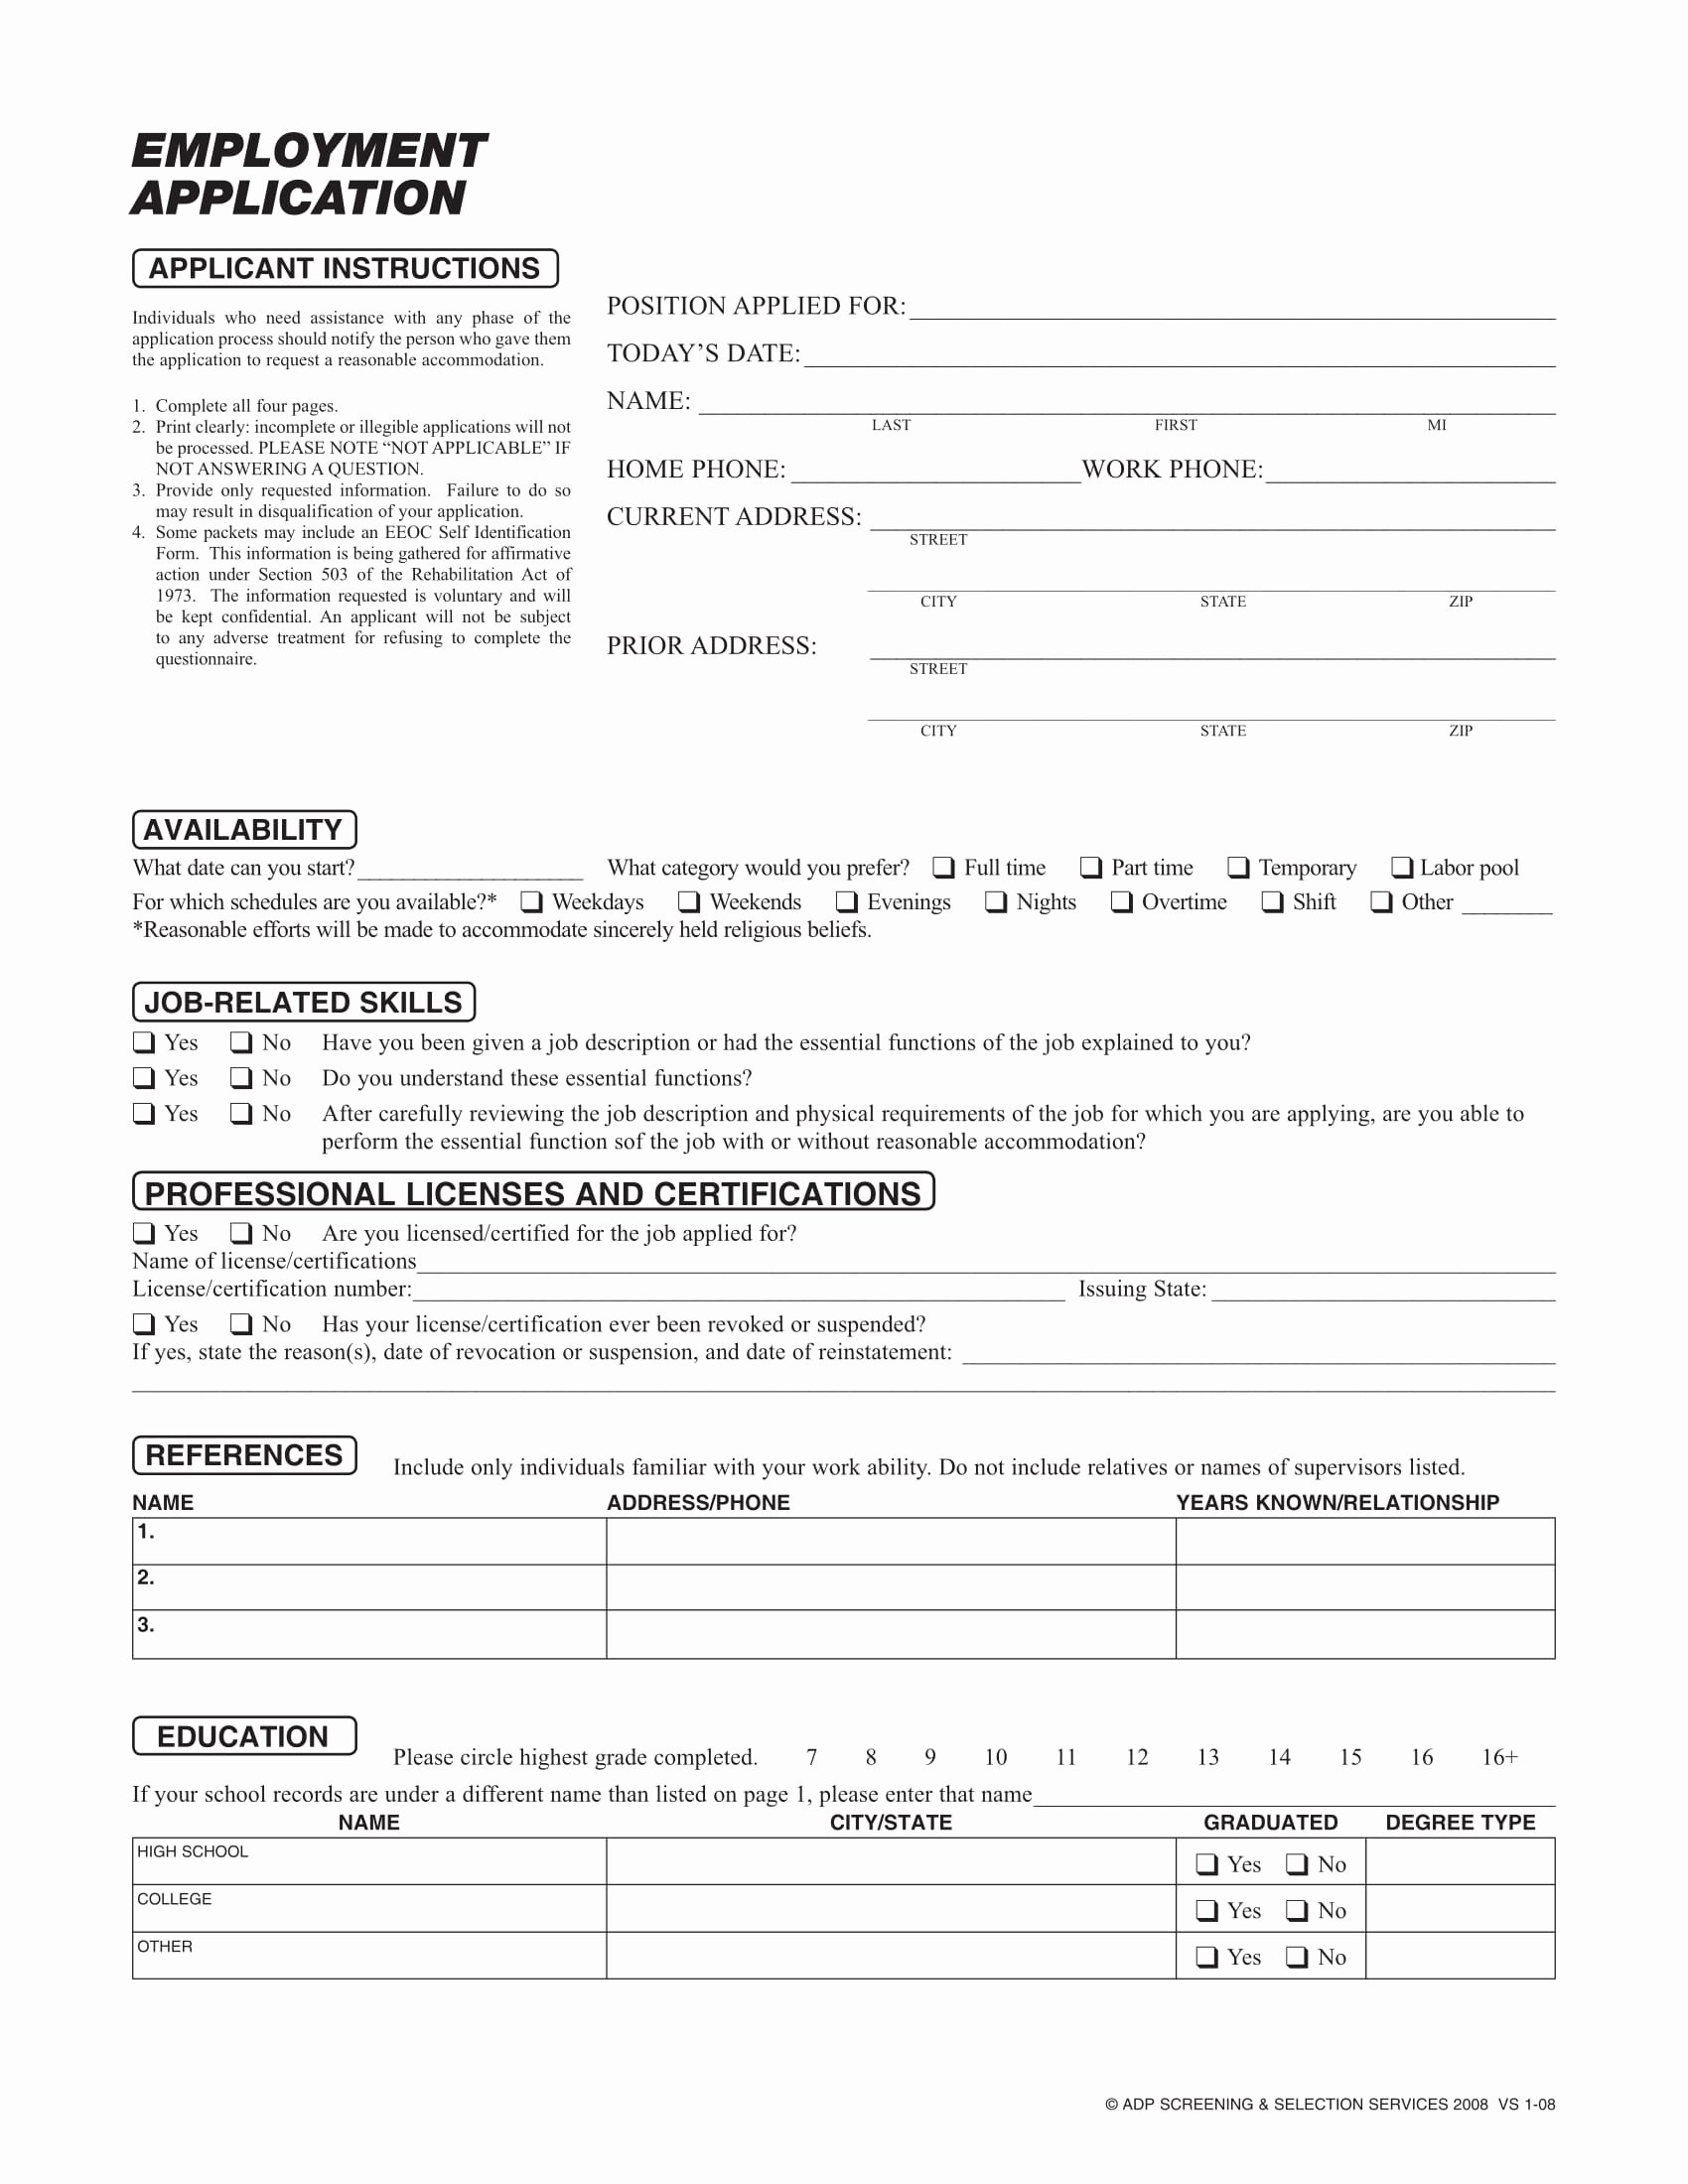 Standard Job Application Lovely 20 Application form Samples for Job events Businesses